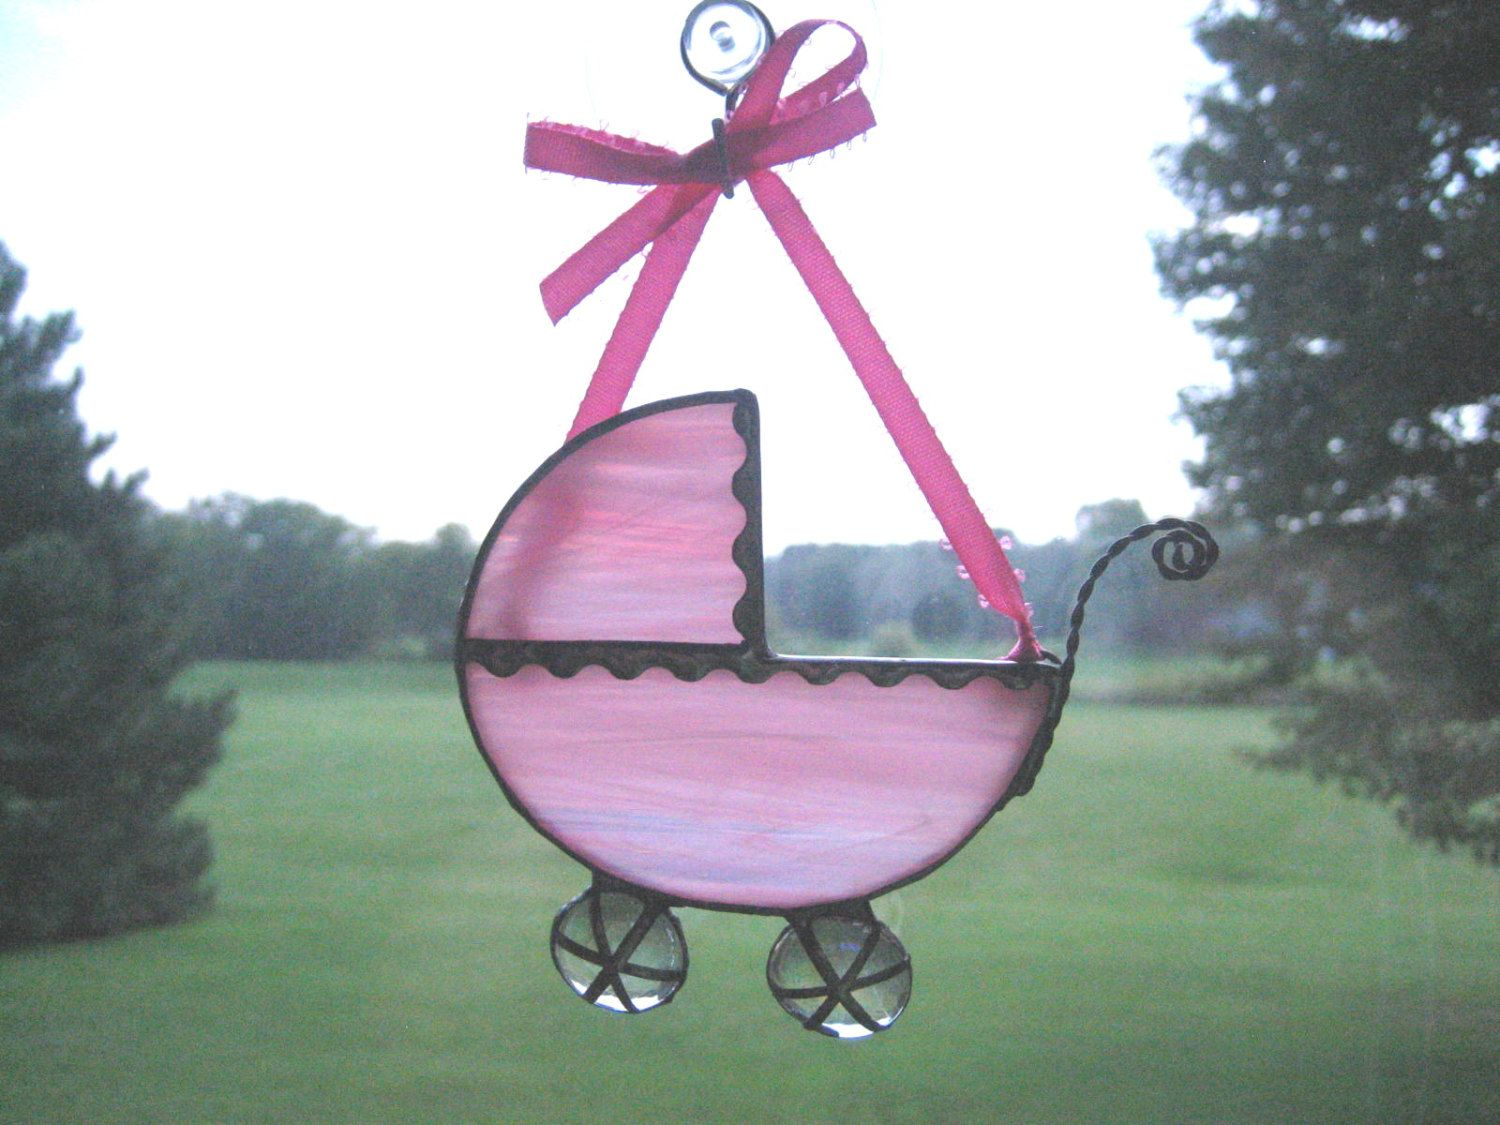 2019 Baby's First Christmas Ornament, Soft Pink Baby Carriage